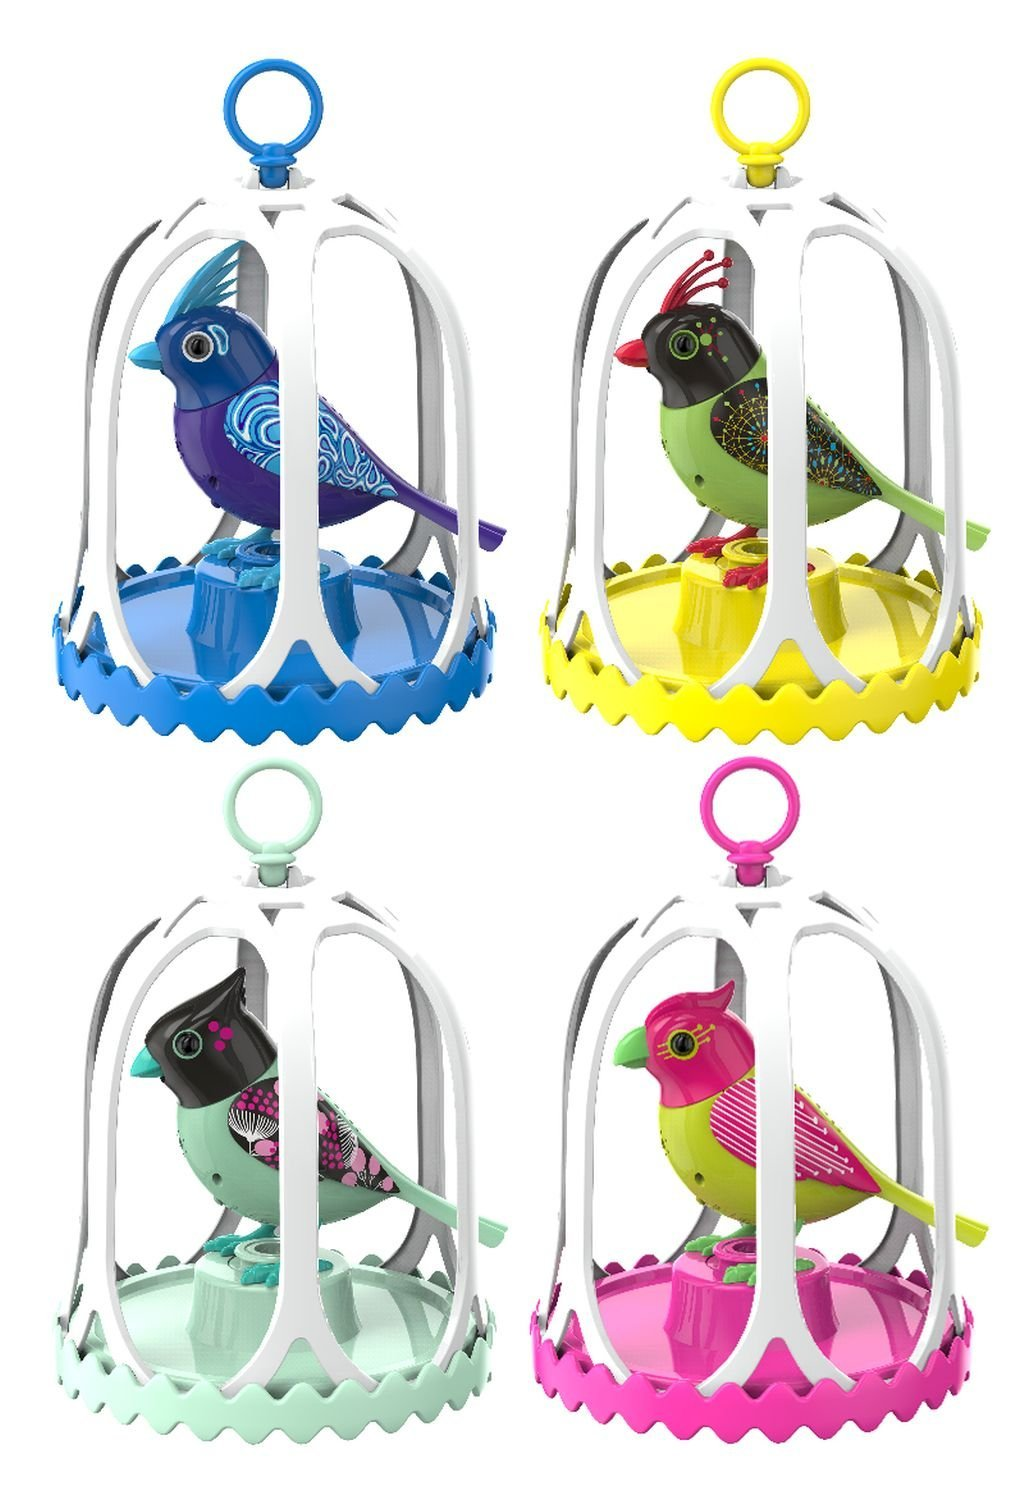 Digi Birds Collection with Cage (τυχαίο χρώμα)